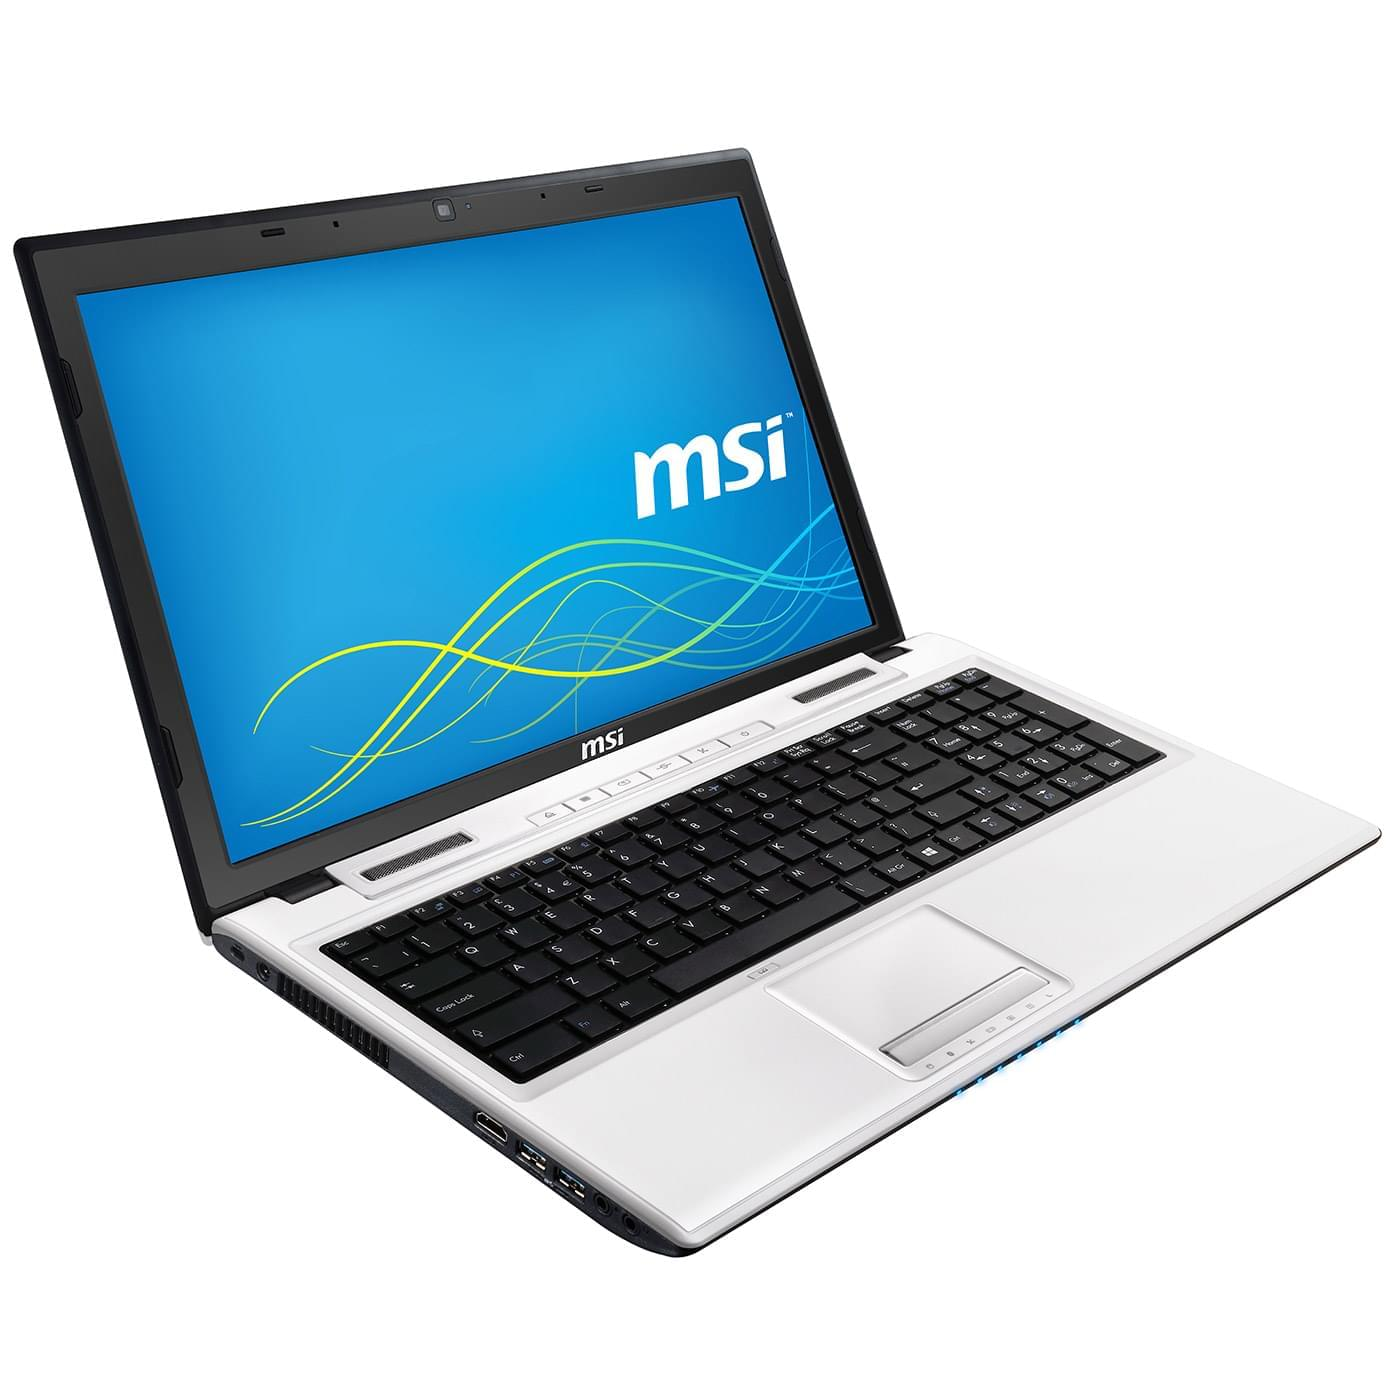 MSI 9S7-16GD15-802 - PC portable MSI - Cybertek.fr - 0